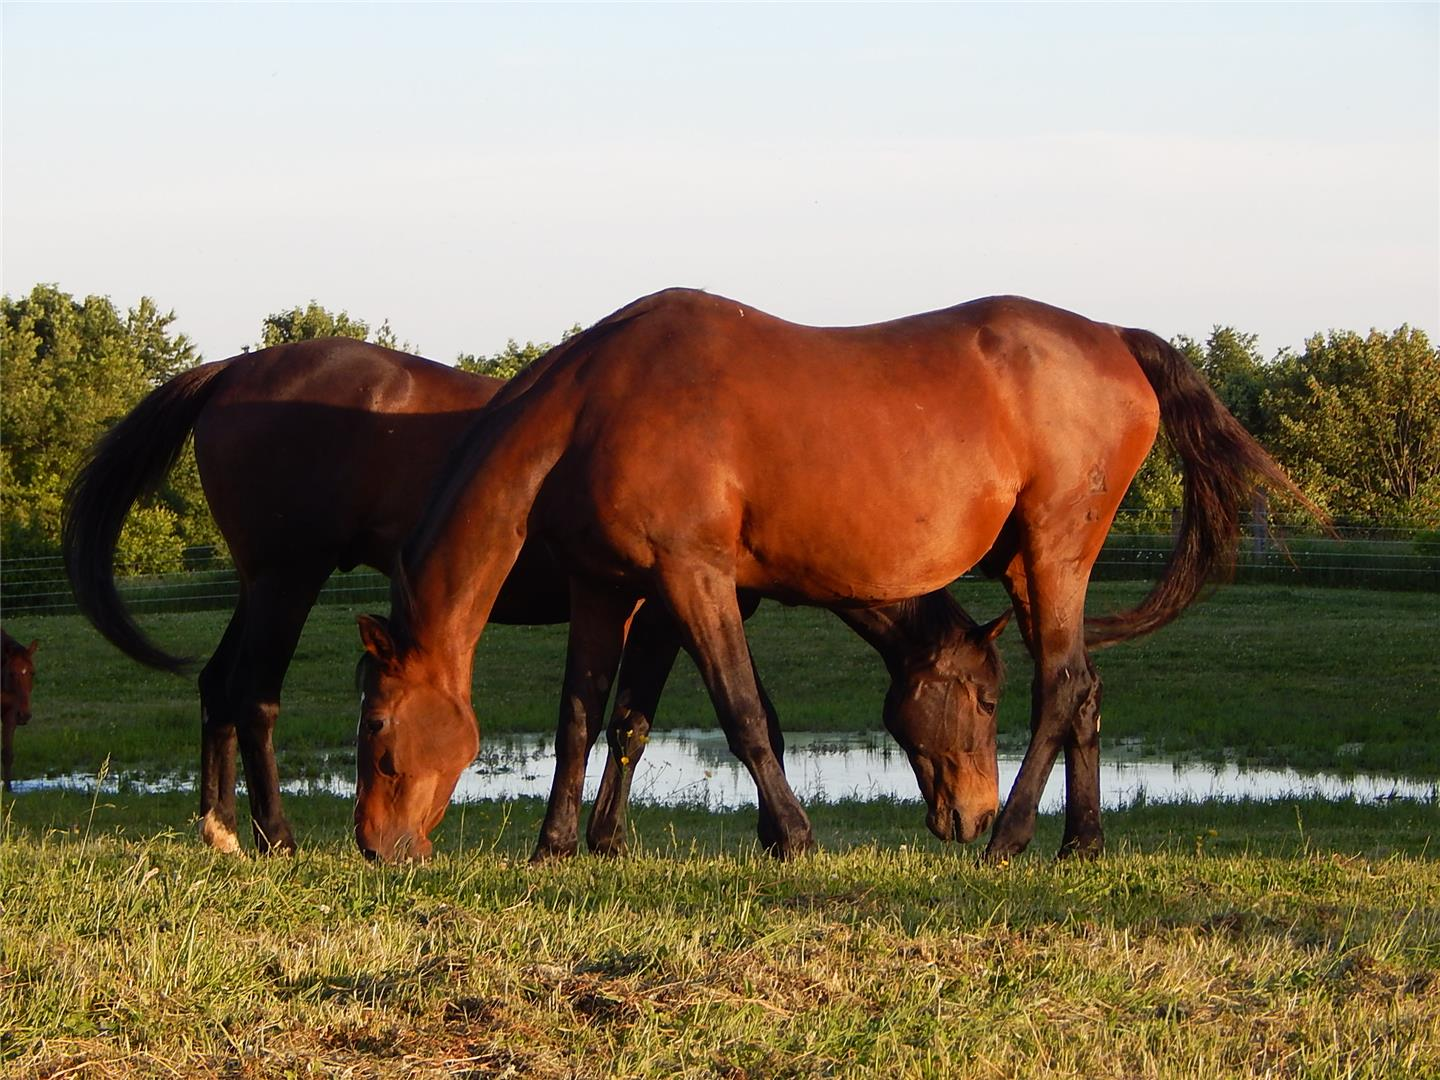 Bright Futures Farm: Thoroughbred Advocacy, Retraining, and Placement